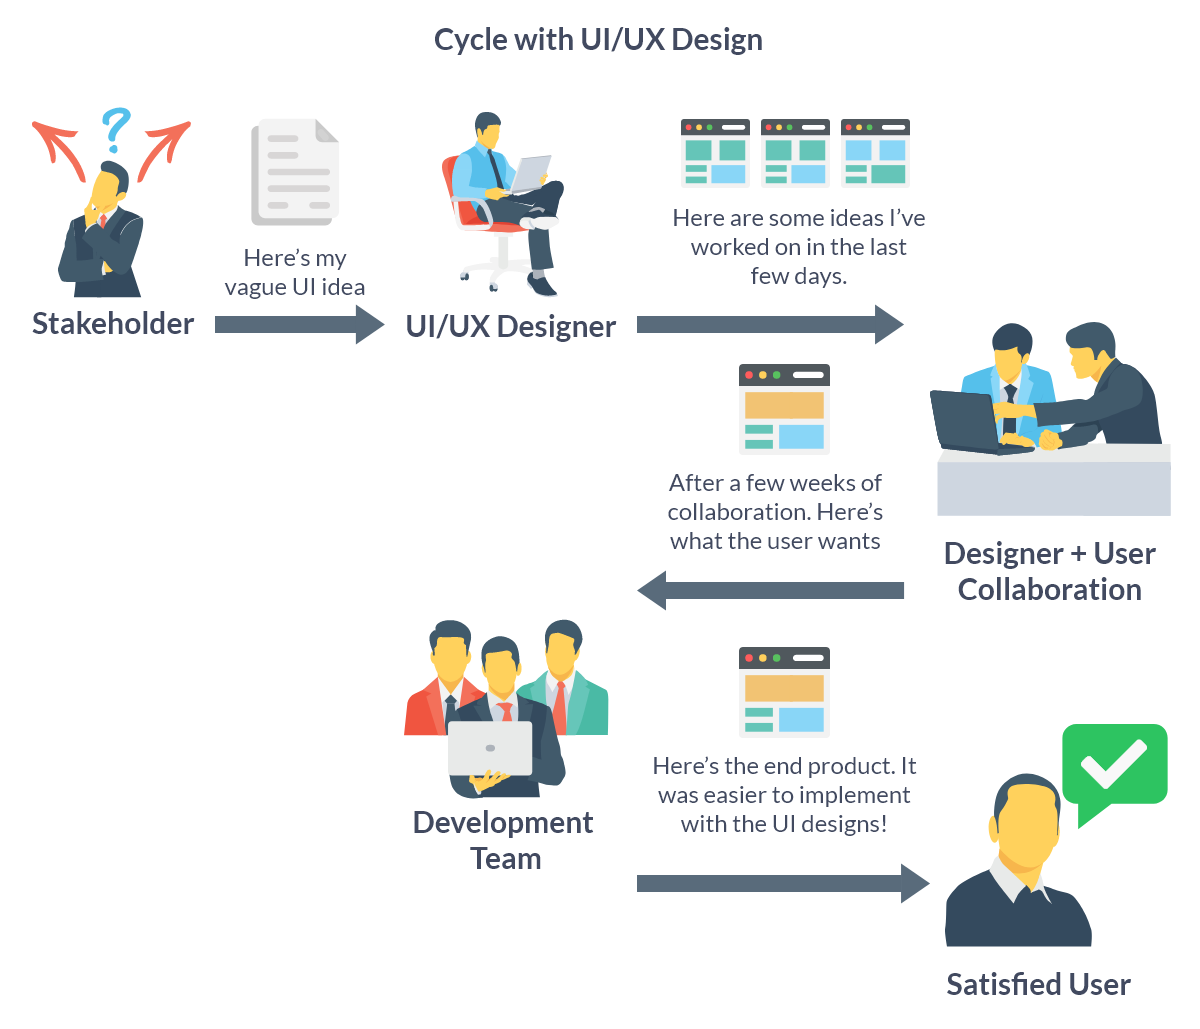 Cycle with UI/UX Design, users can be taken into consideration from the very beginning, reducing the chances of disatisfaction for users in the end.